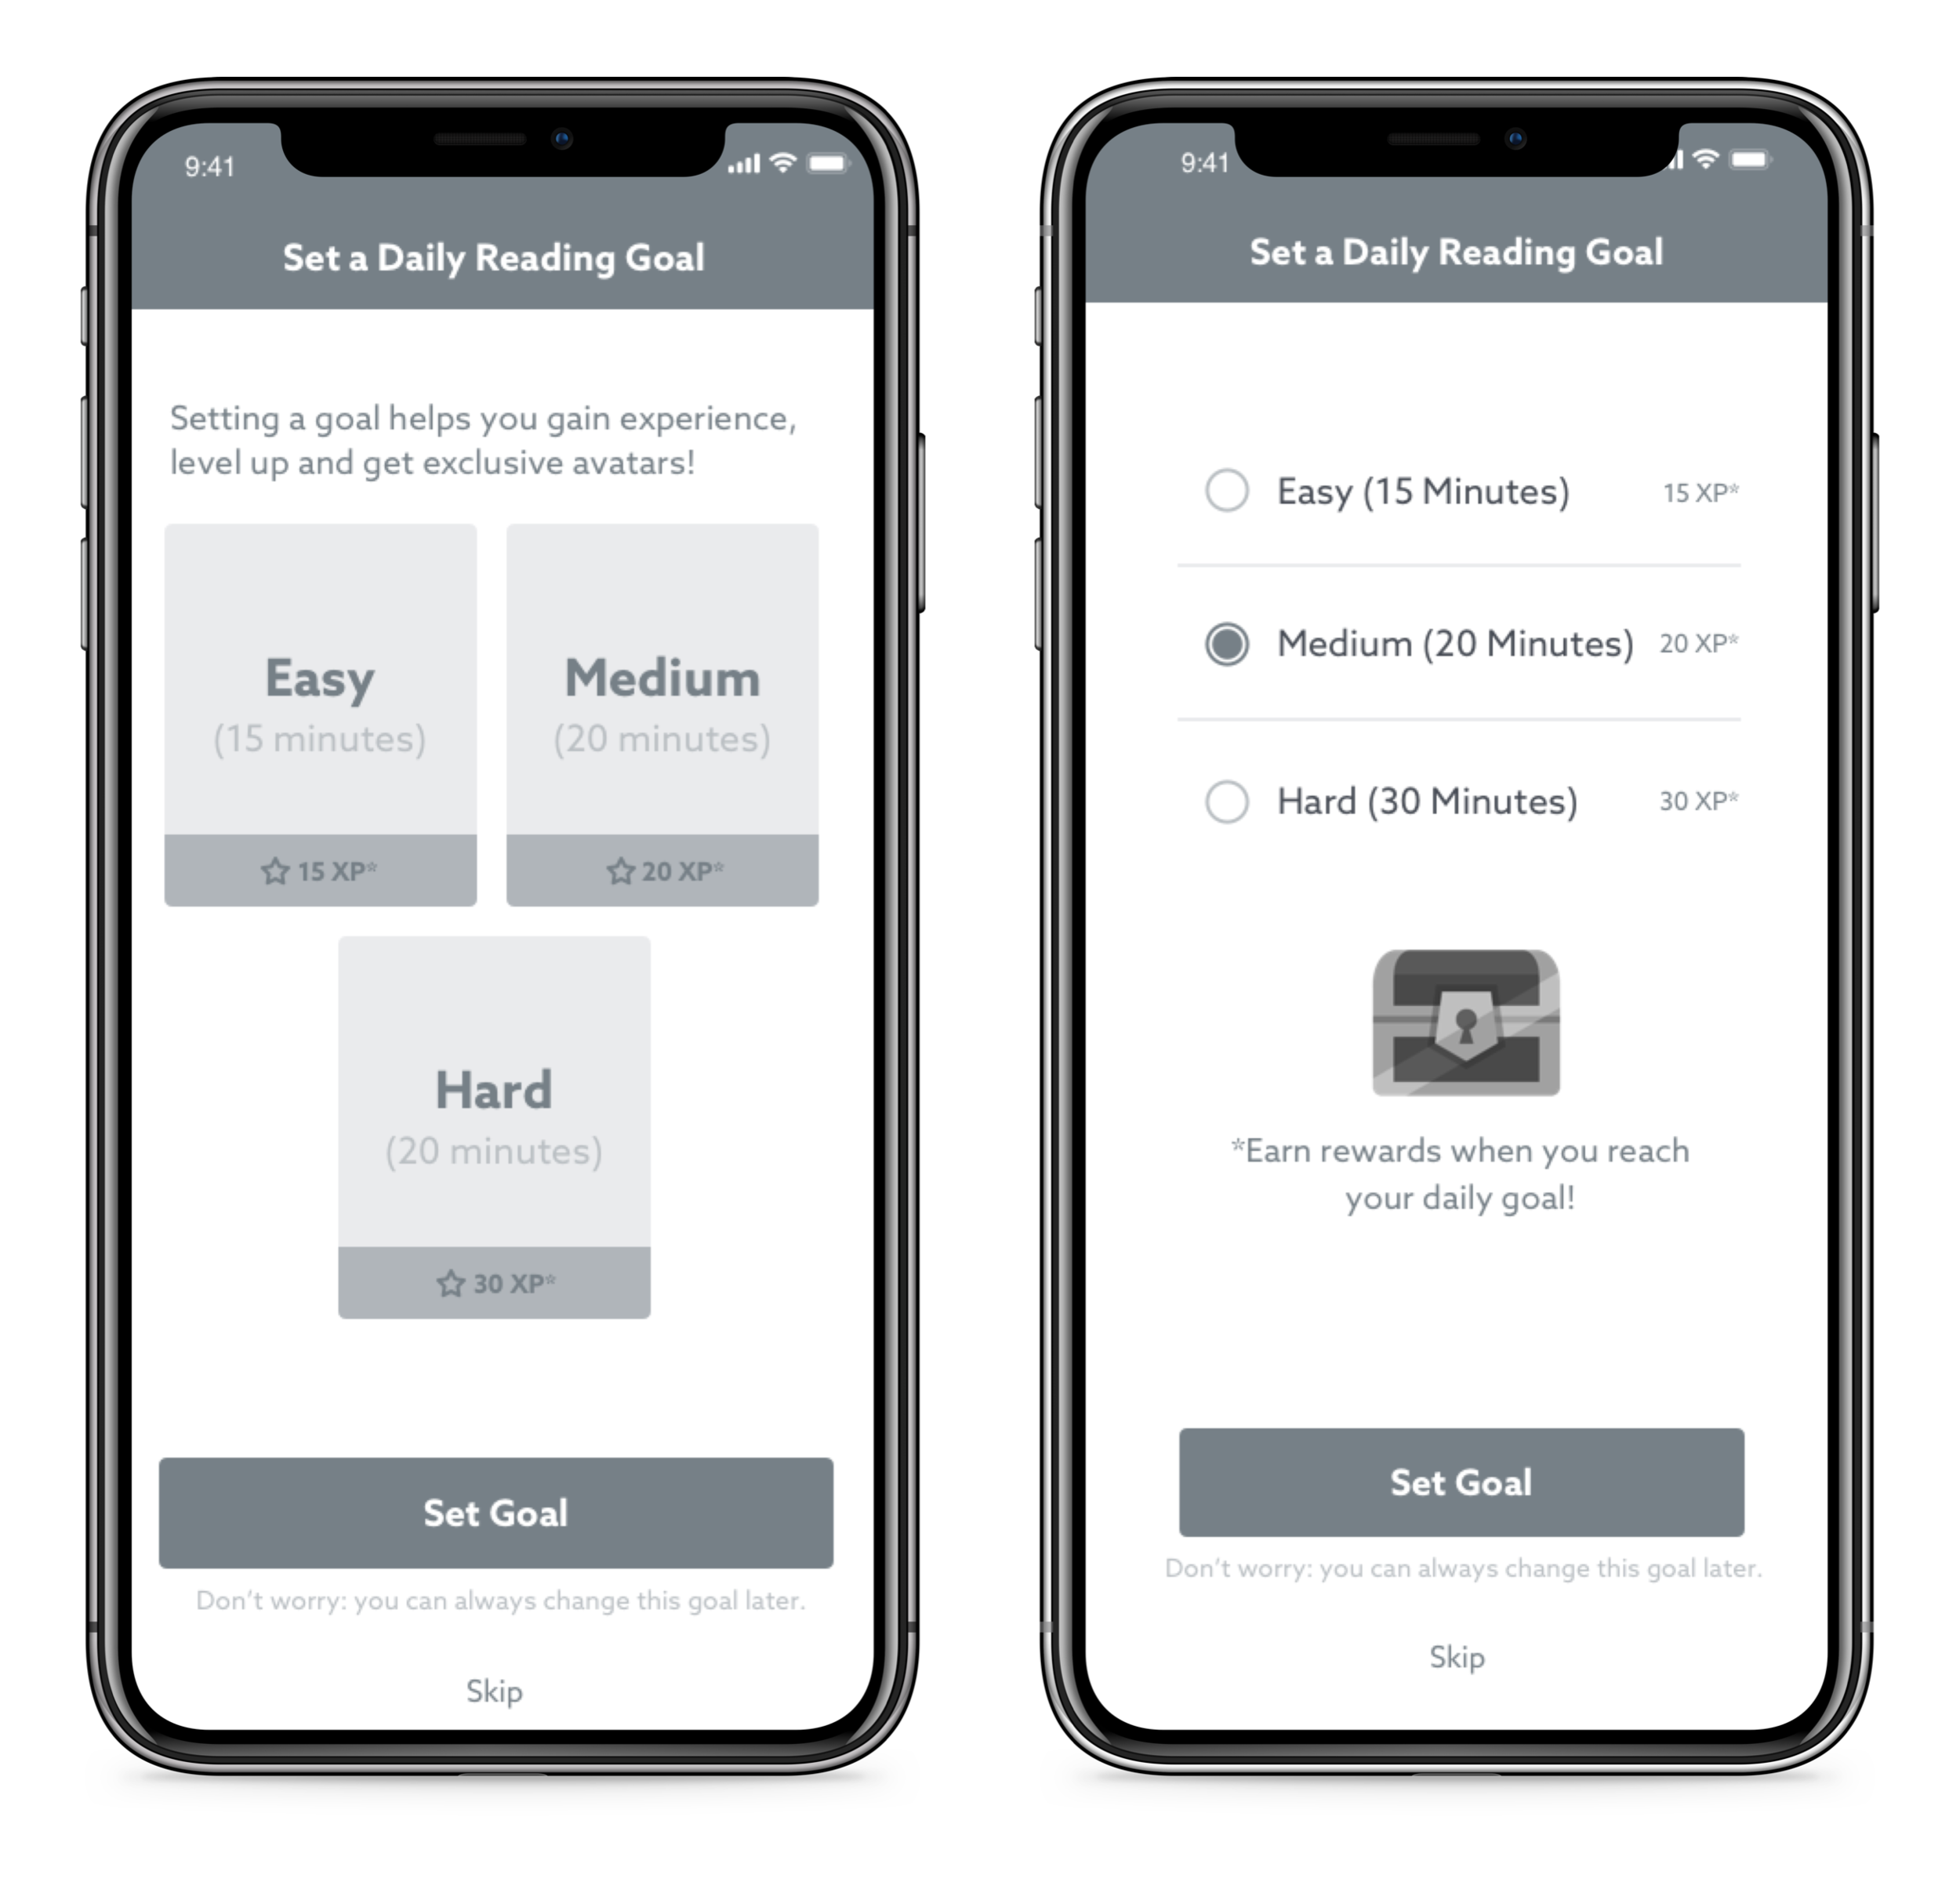 Wireframes for setting a goal